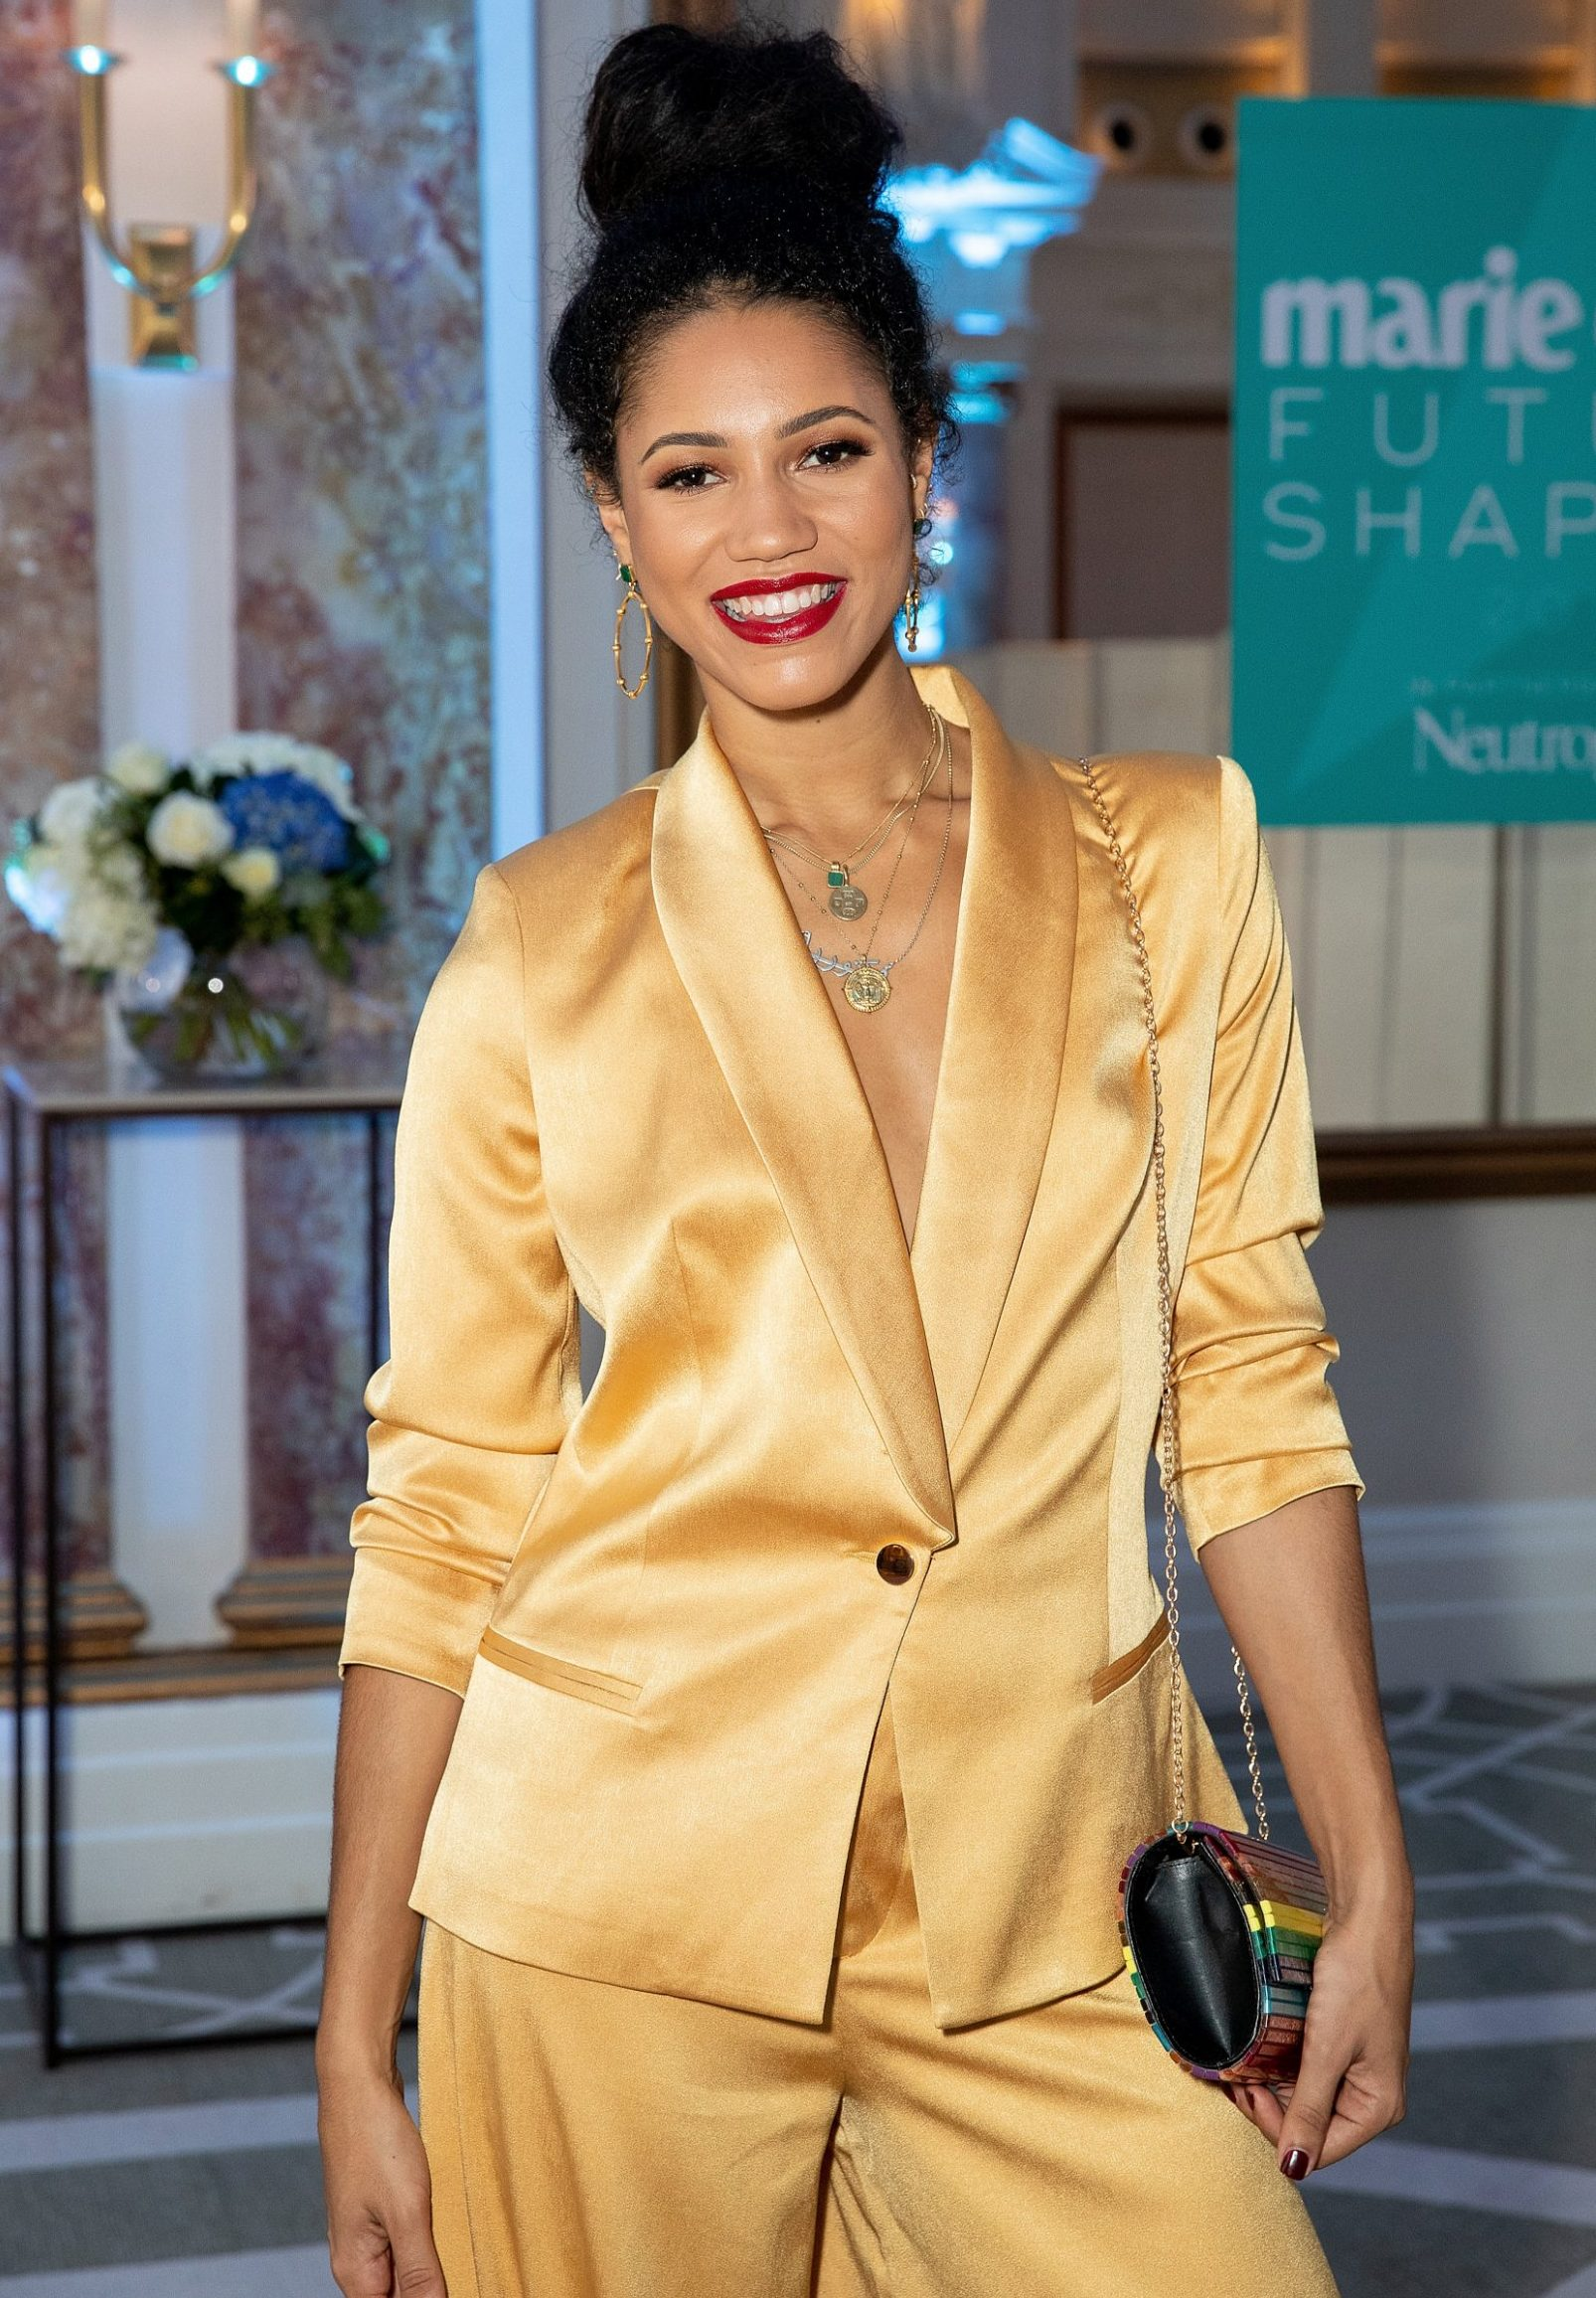 LONDON, ENGLAND - OCTOBER 09: Vick Hope attends the Marie Claire Future Shapers Awards, in partnership with Neutrogena, at The Principal Hotel on October 9, 2018 in London, England. (Photo by David M. Benett/Dave Benett/Getty Images for Marie Claire)